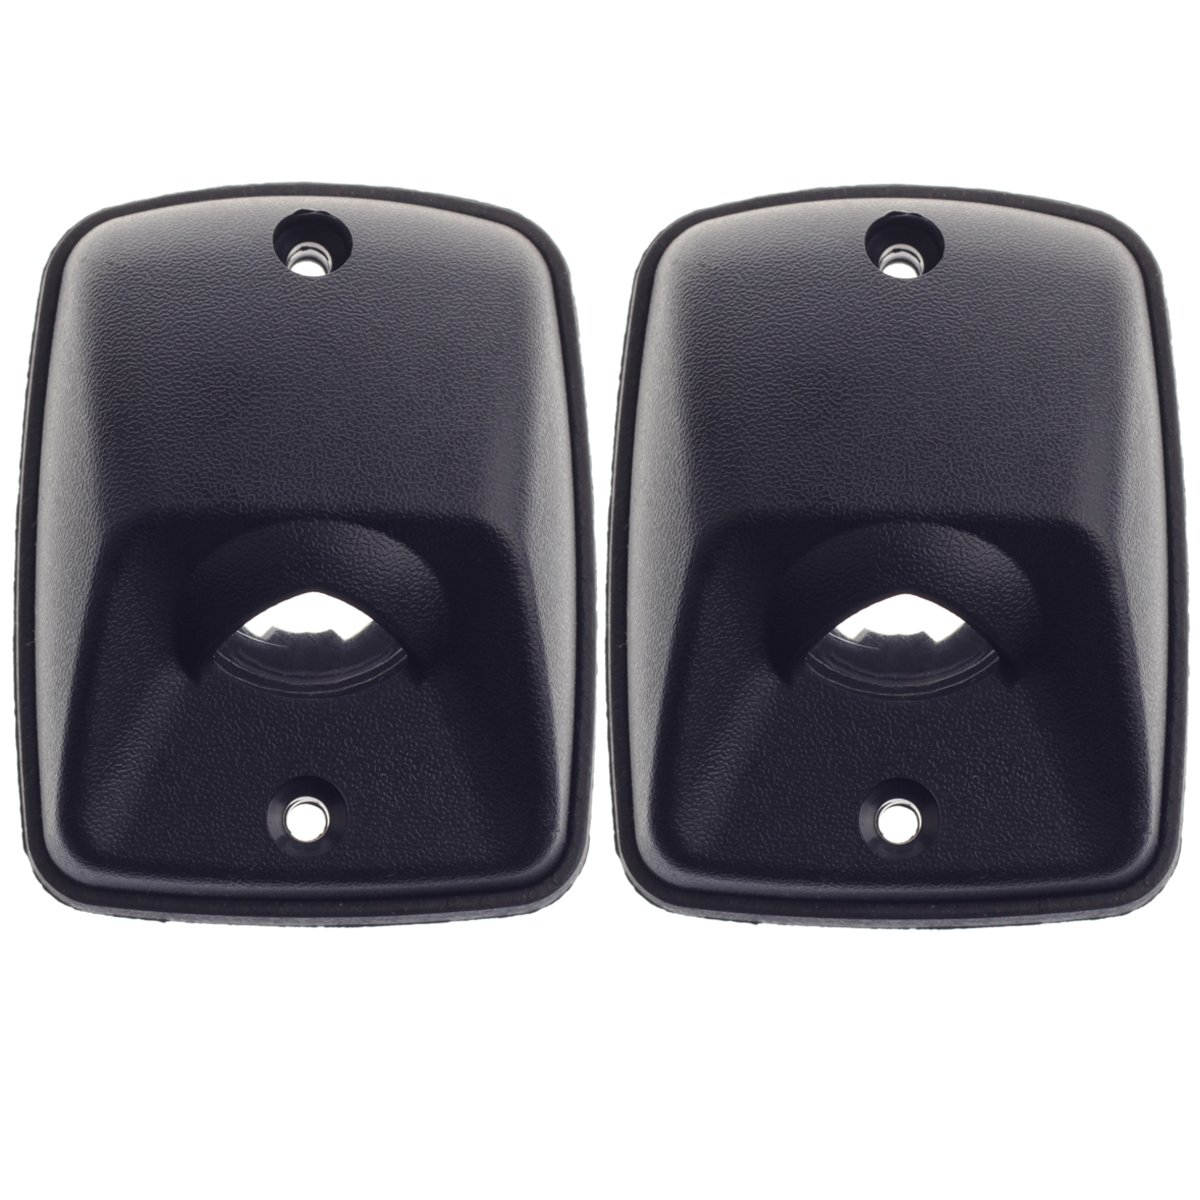 Pack of 2 HERCOO License Plate Lights Lamp Lens Black Housing Compatible with 1995 1996 1997 1998 1999 2000 2001 2002 2003 2004 Toyota Tacoma Pickup Truck Rear Step Bumper Aftermarket Replacement